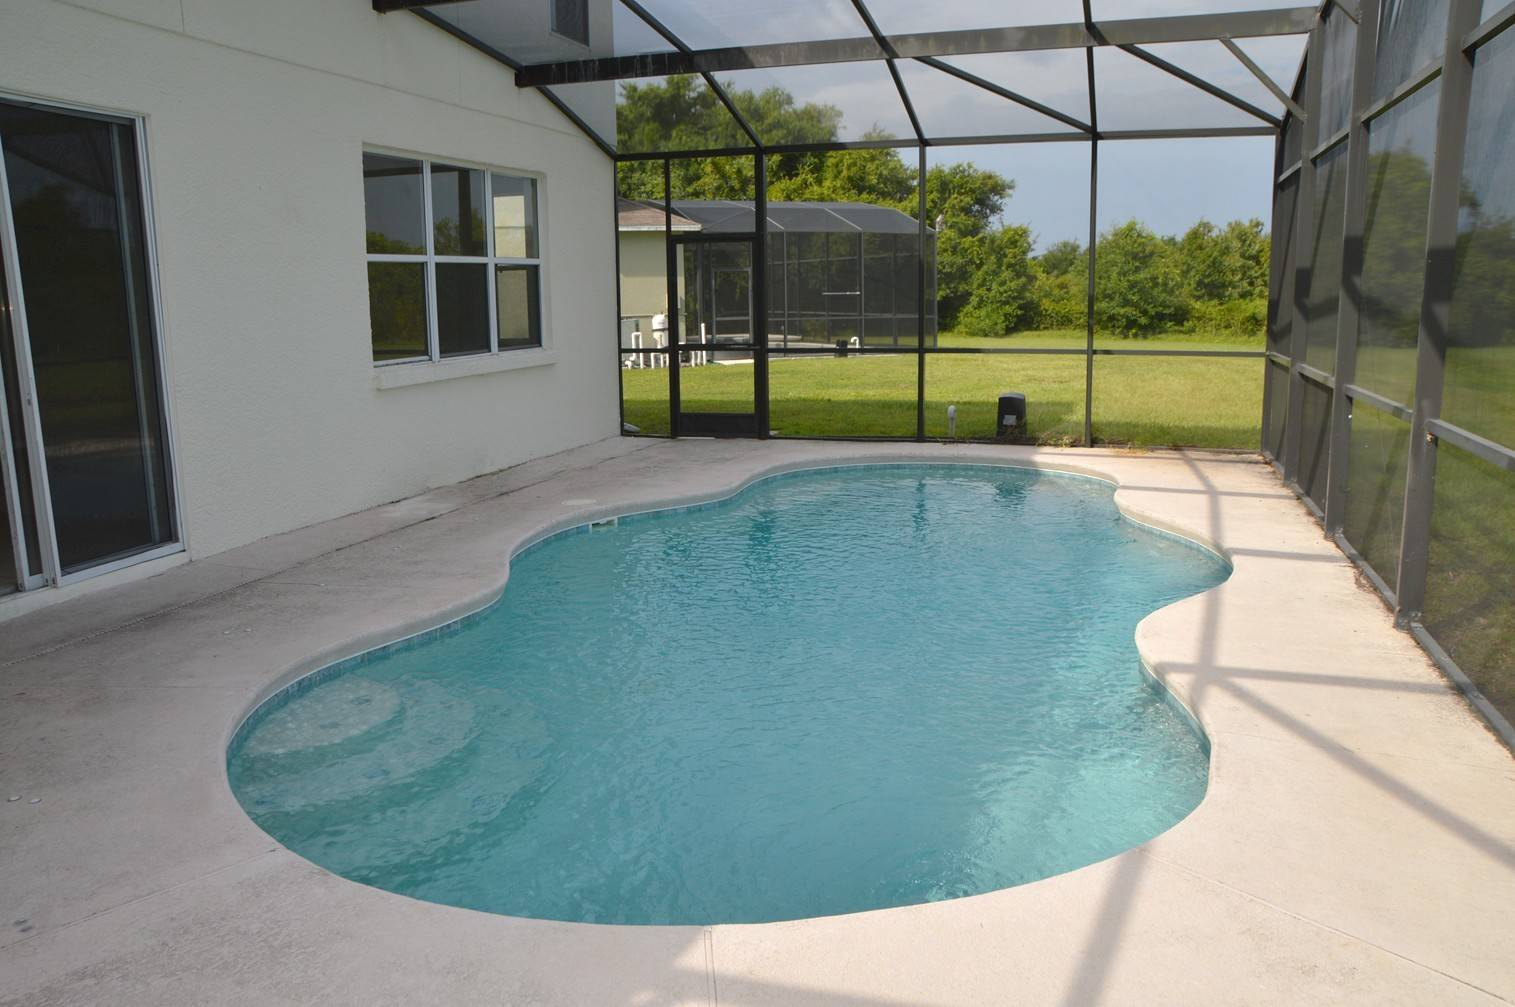 201 matties way kelly plantation destin florida pool for 5 bedroom homes for sale in florida